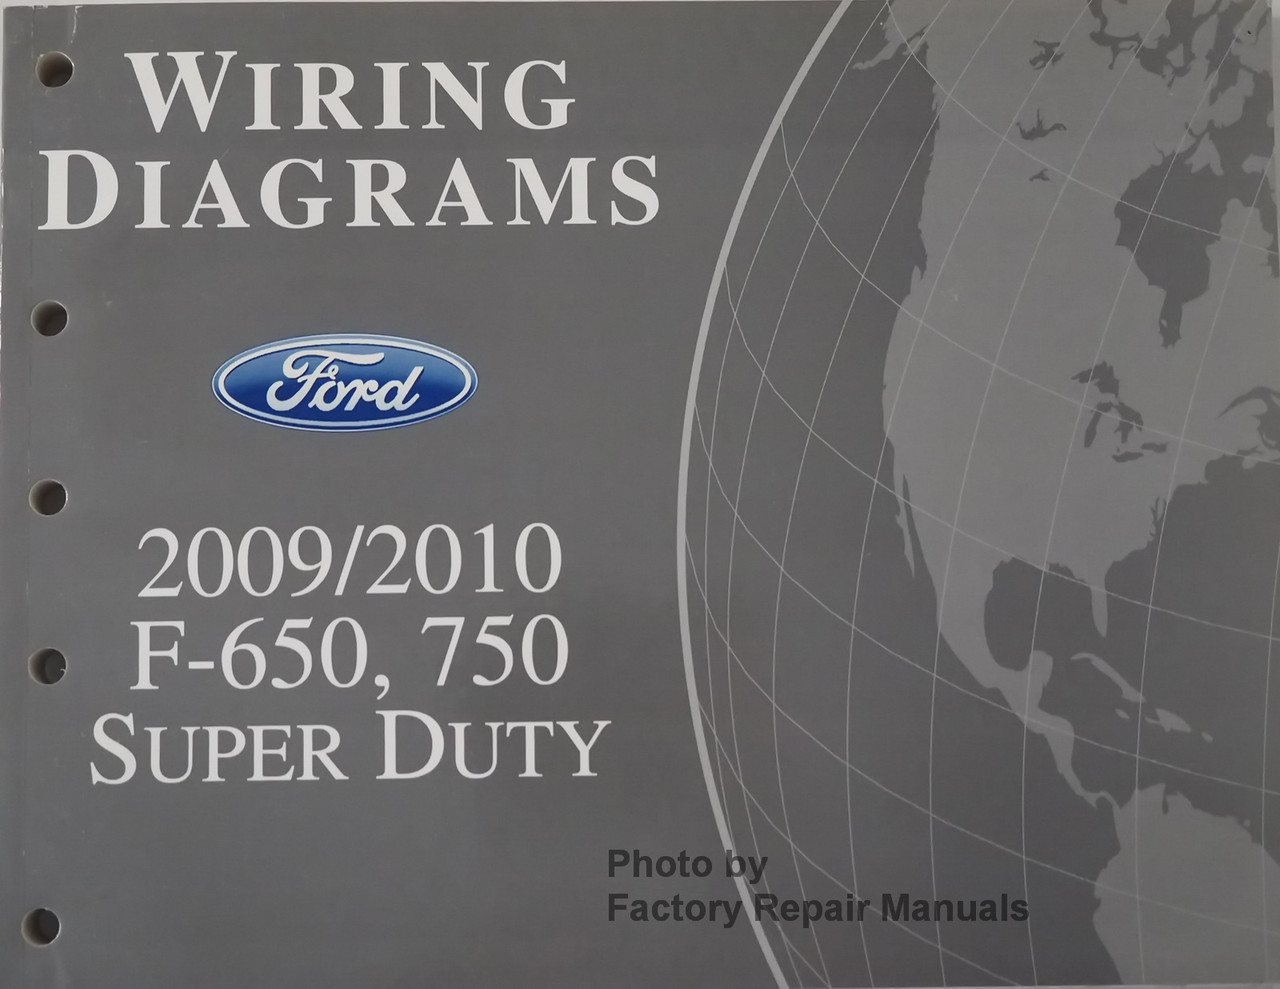 2009 2010 Ford F650 F750 Truck Electrical Wiring Diagrams Manual Original -  Factory Repair Manuals | Ford F650 Super Duty Wire Diagram |  | Factory Repair Manuals